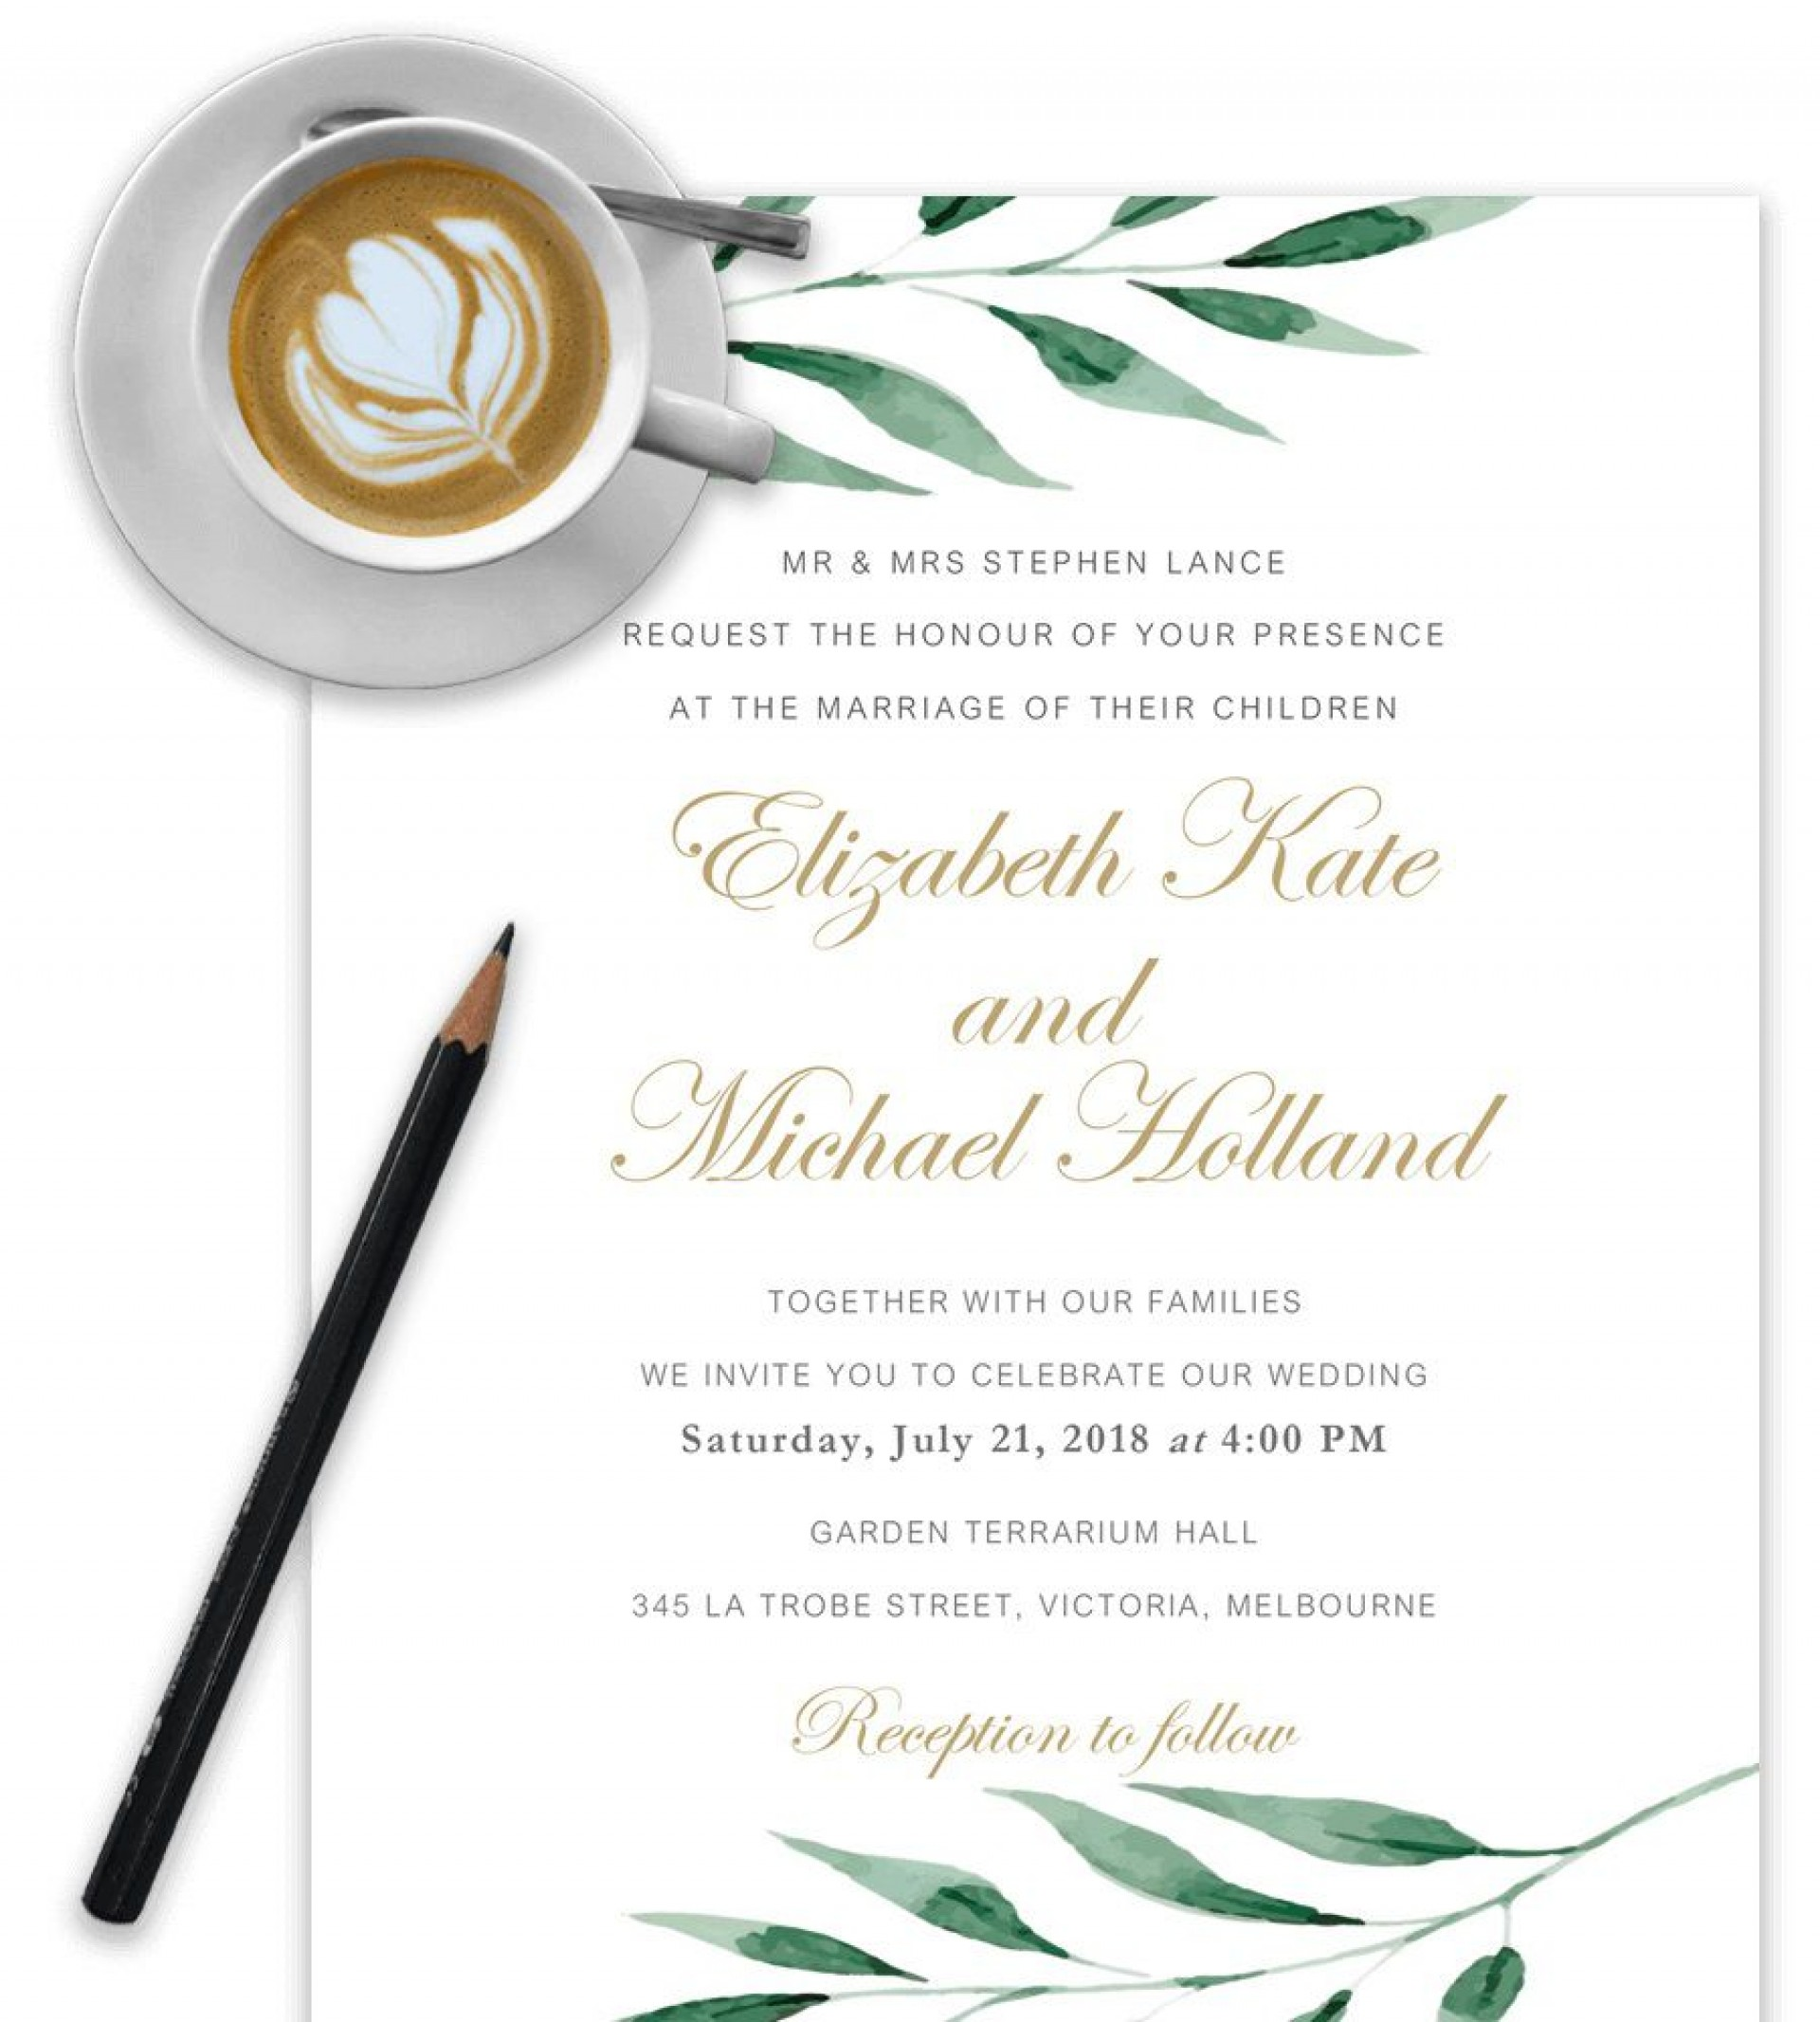 009 Stupendou Invitation Template For Word Highest Clarity  Birthday Wedding Free Indian1920